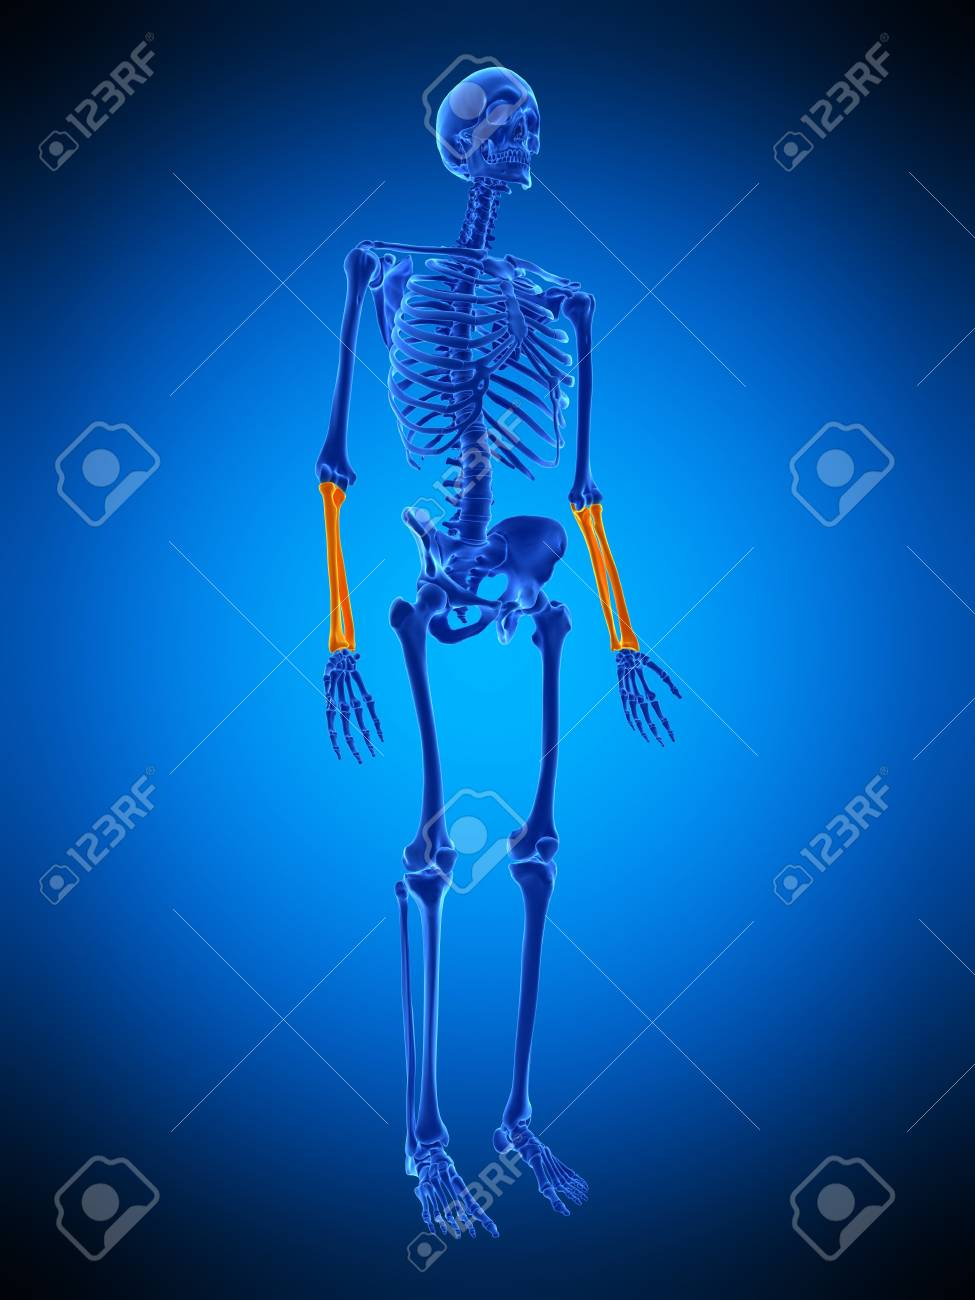 Lower Arm Bones Illustration Stock Photo Picture And Royalty Free